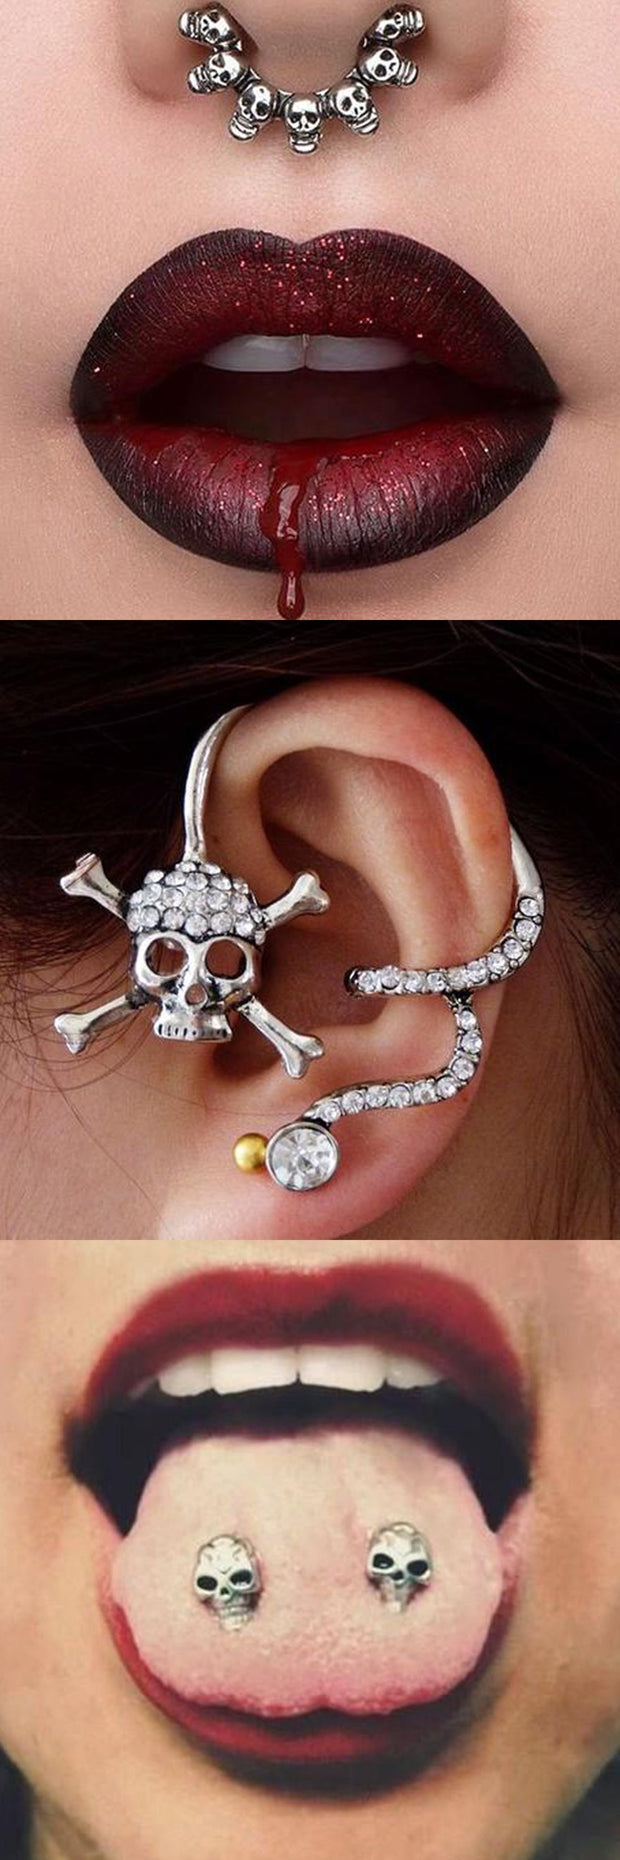 Skull Septum Piercing Jewelry Ideas - Pirate Earring Cuff - Tongue Barbell Studs - www.MyBodiArt.com